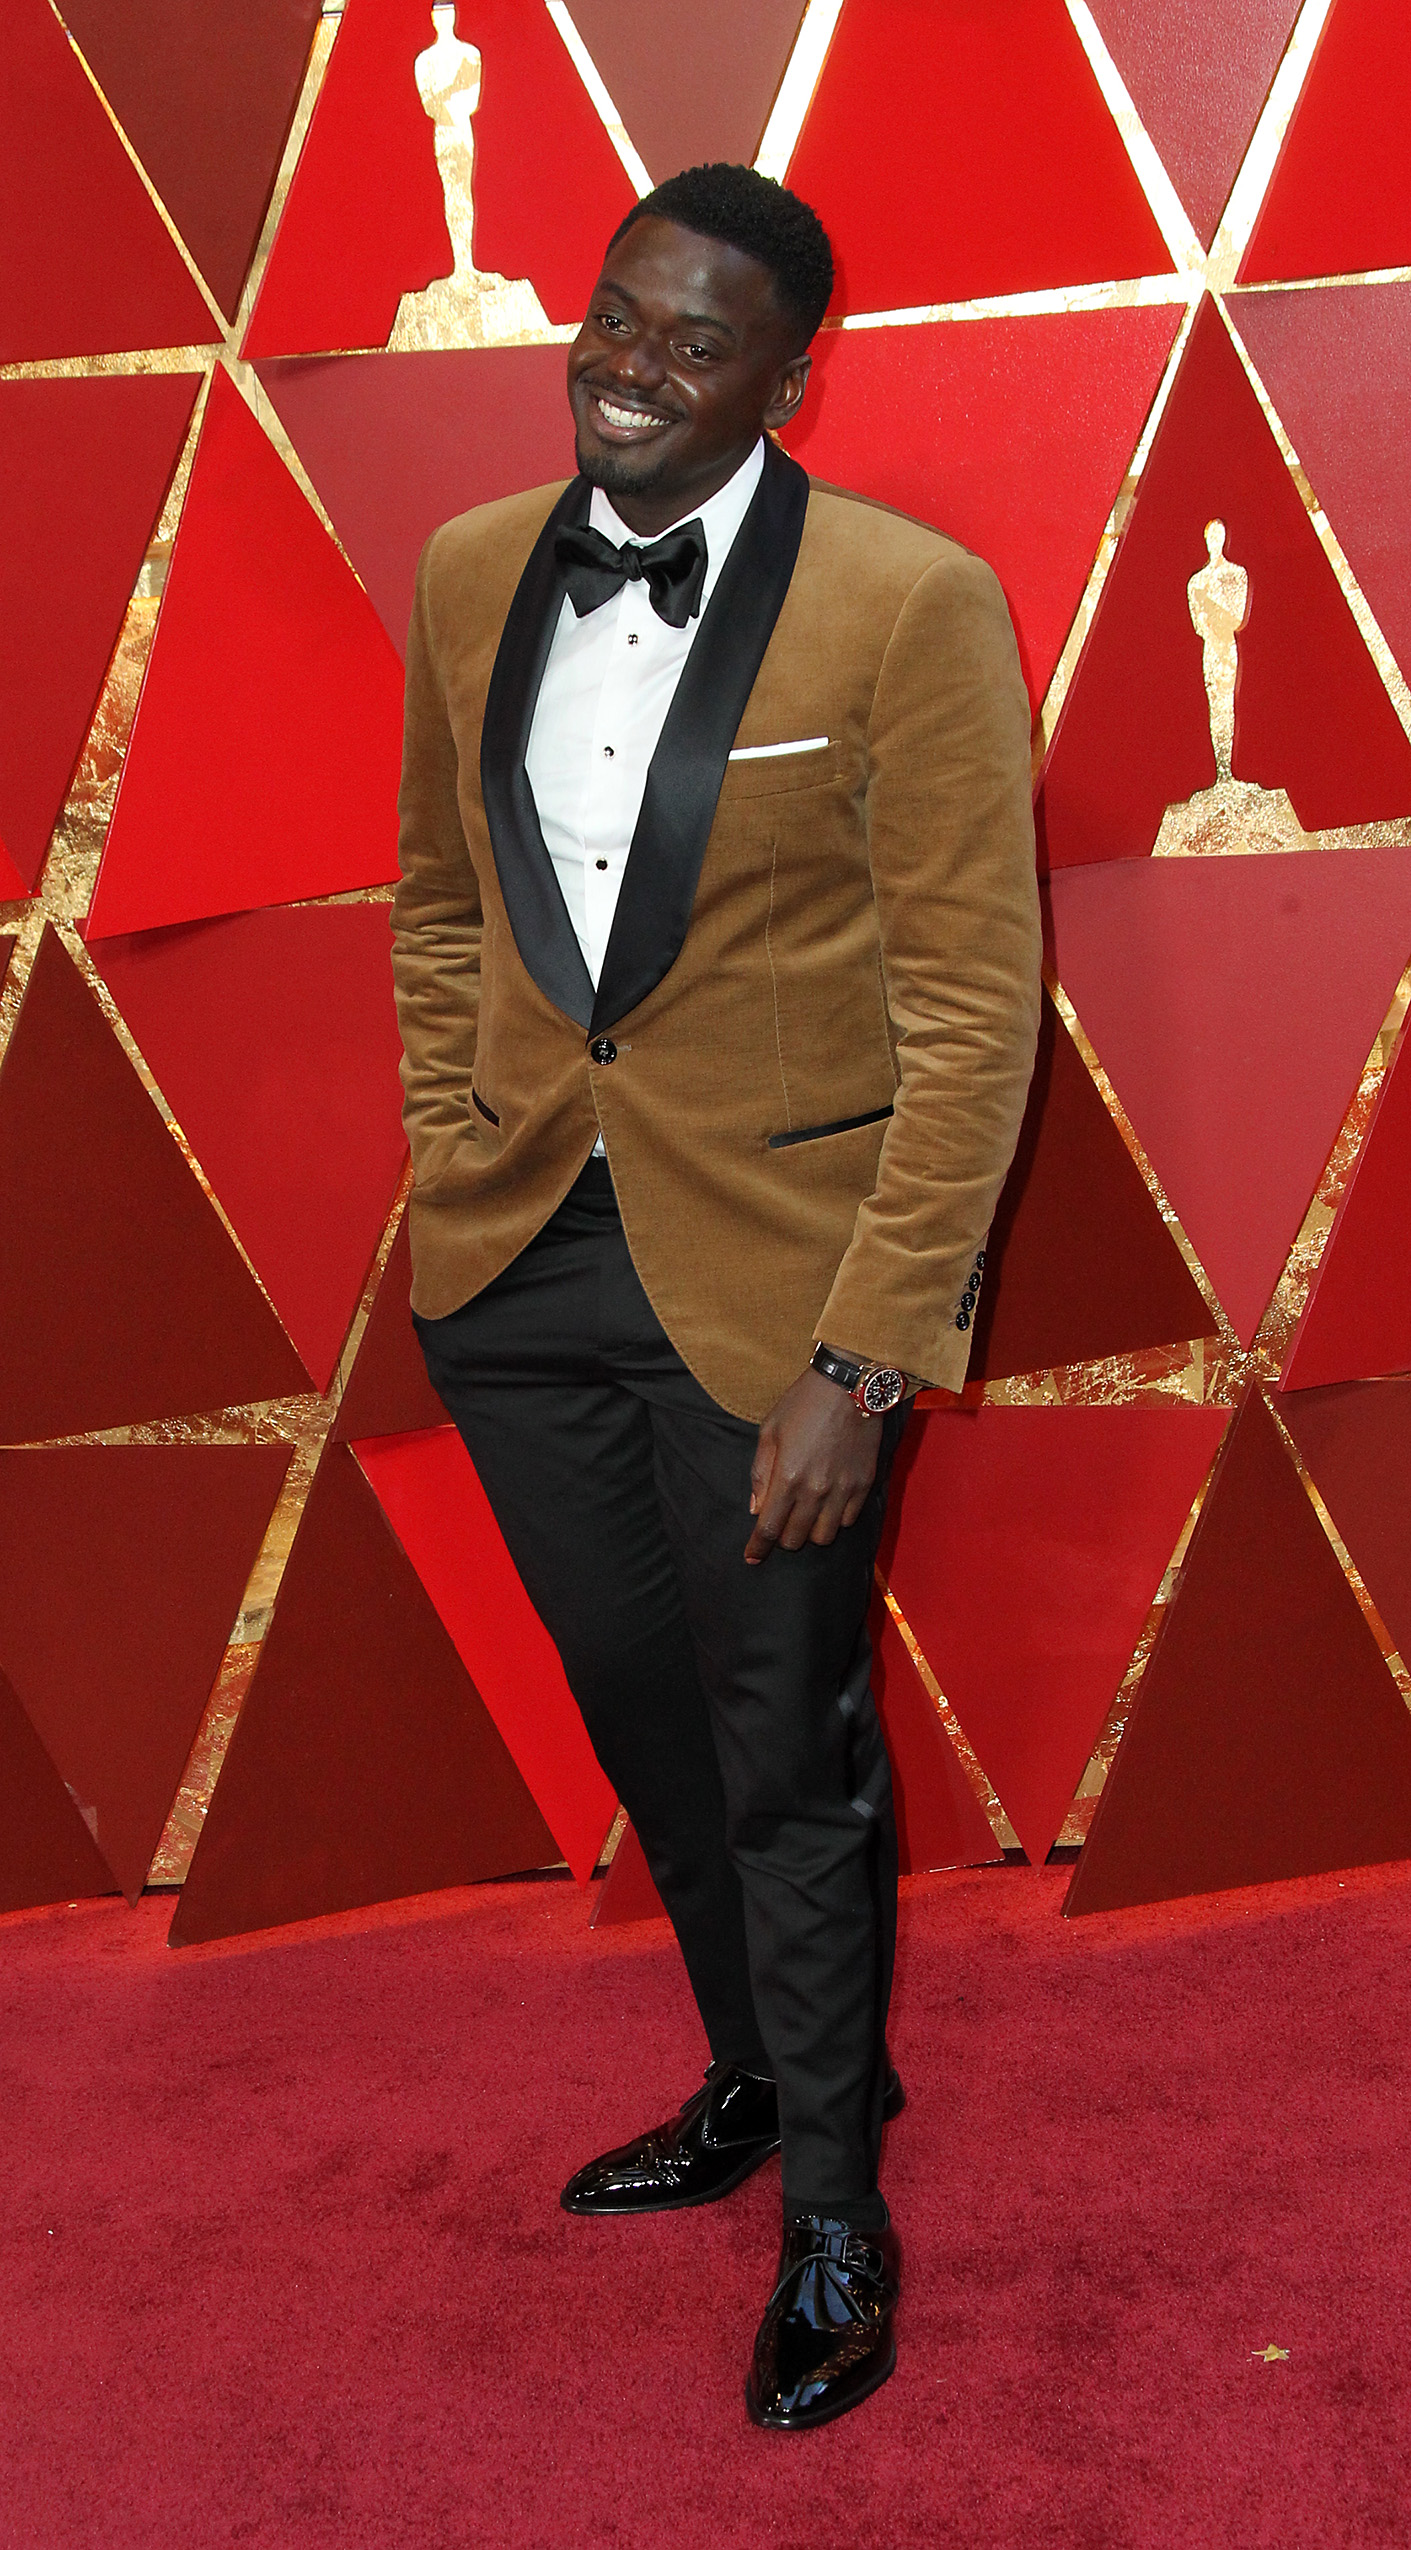 Daniel Kaluuya{&amp;nbsp;}arrives at the 90th Annual Academy Awards (Oscars) held at the Dolby Theater in Hollywood, California. (Image: Adriana M. Barraza/WENN.com)<p></p>